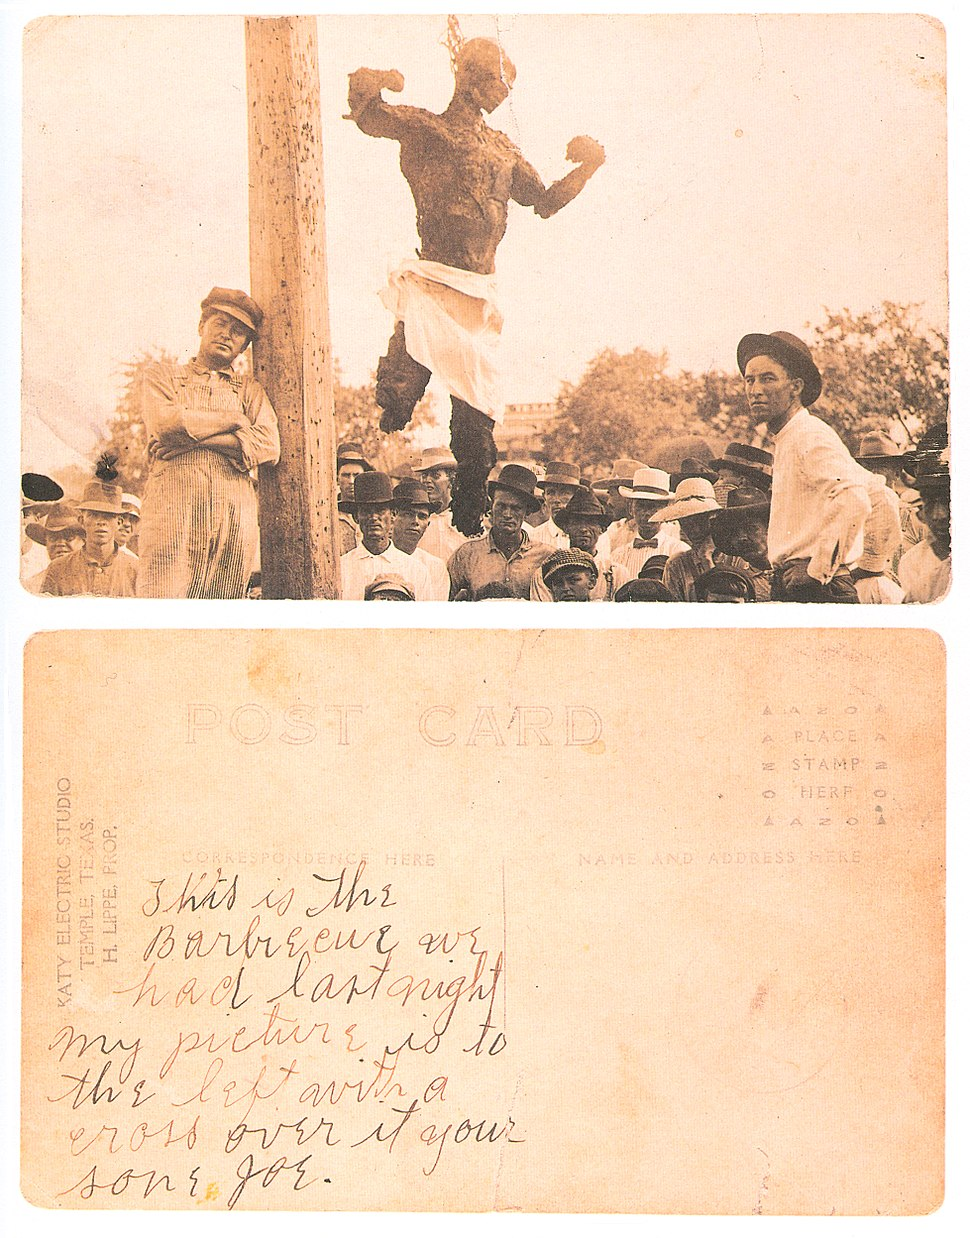 Postcard of the lynched Will Stanley front and back